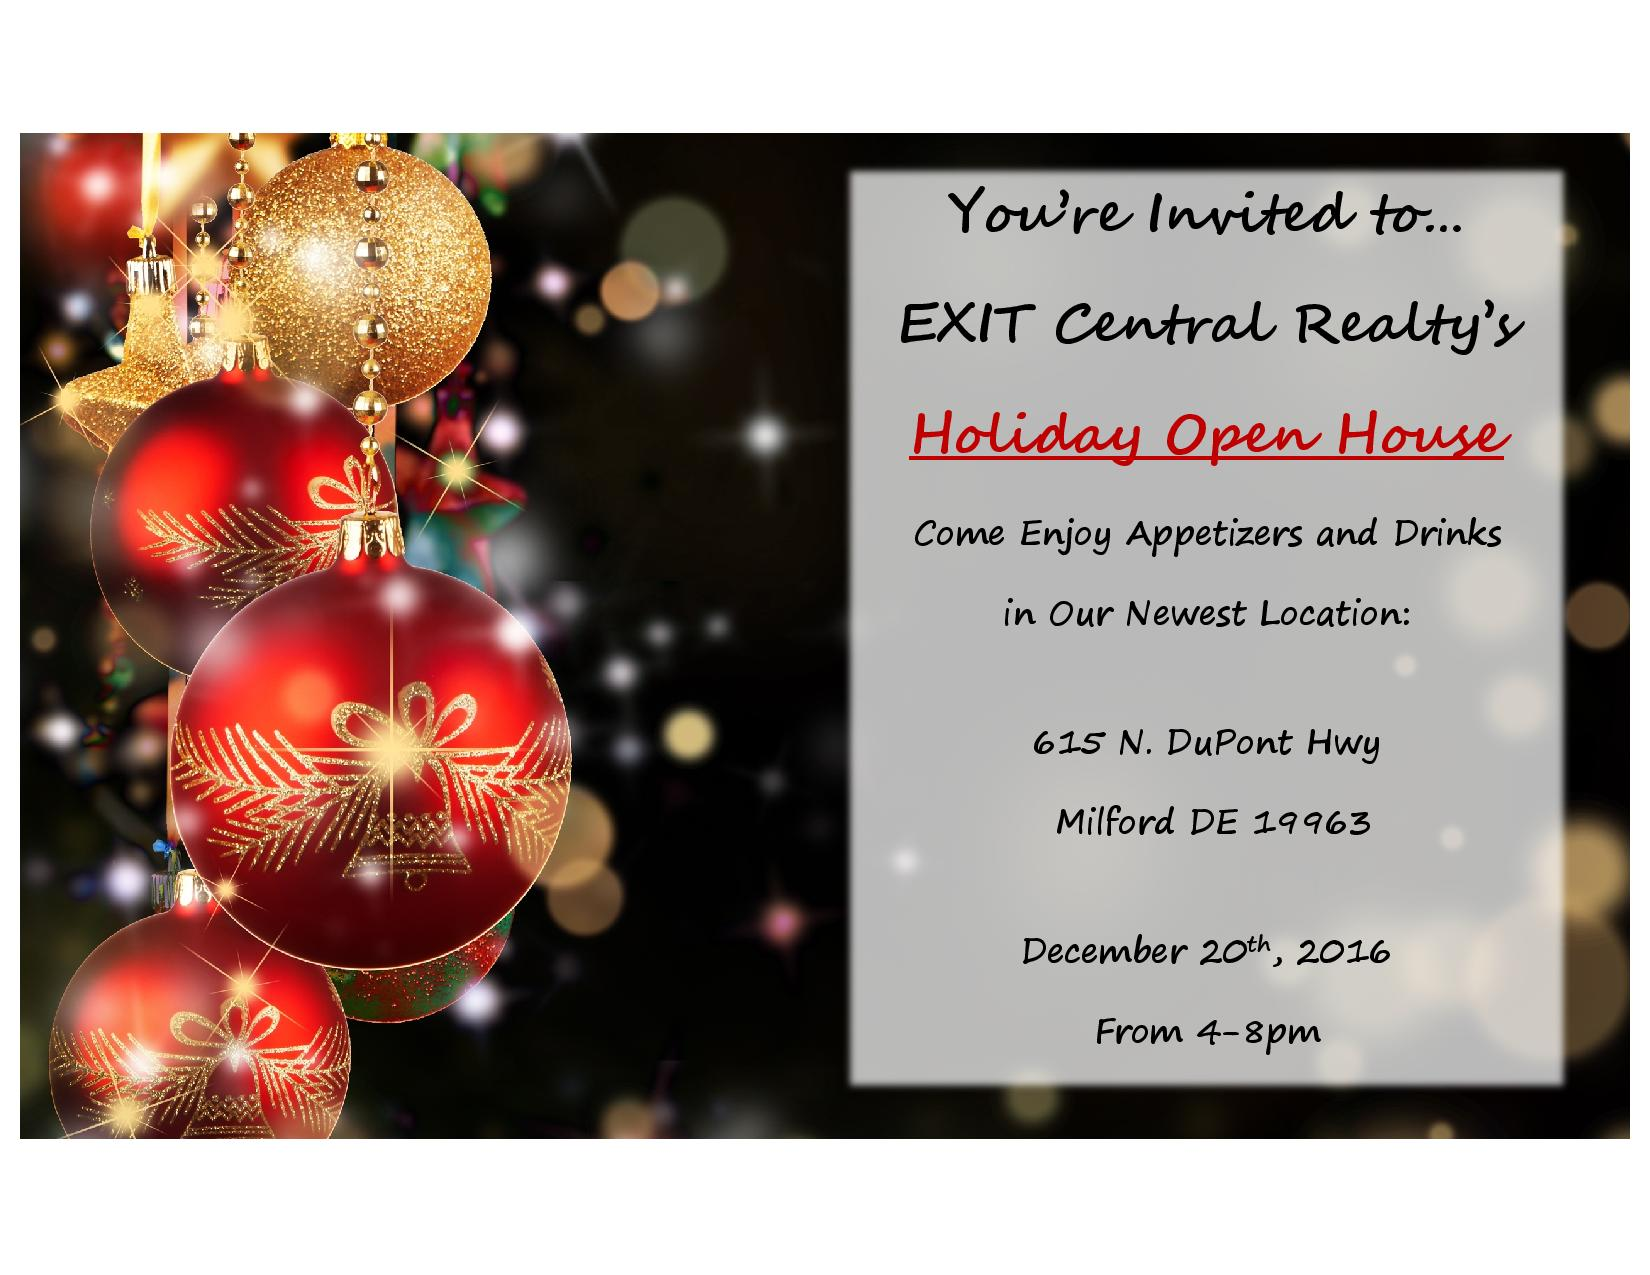 Delaware kent county viola - Come Join Us Exit Holiday Party